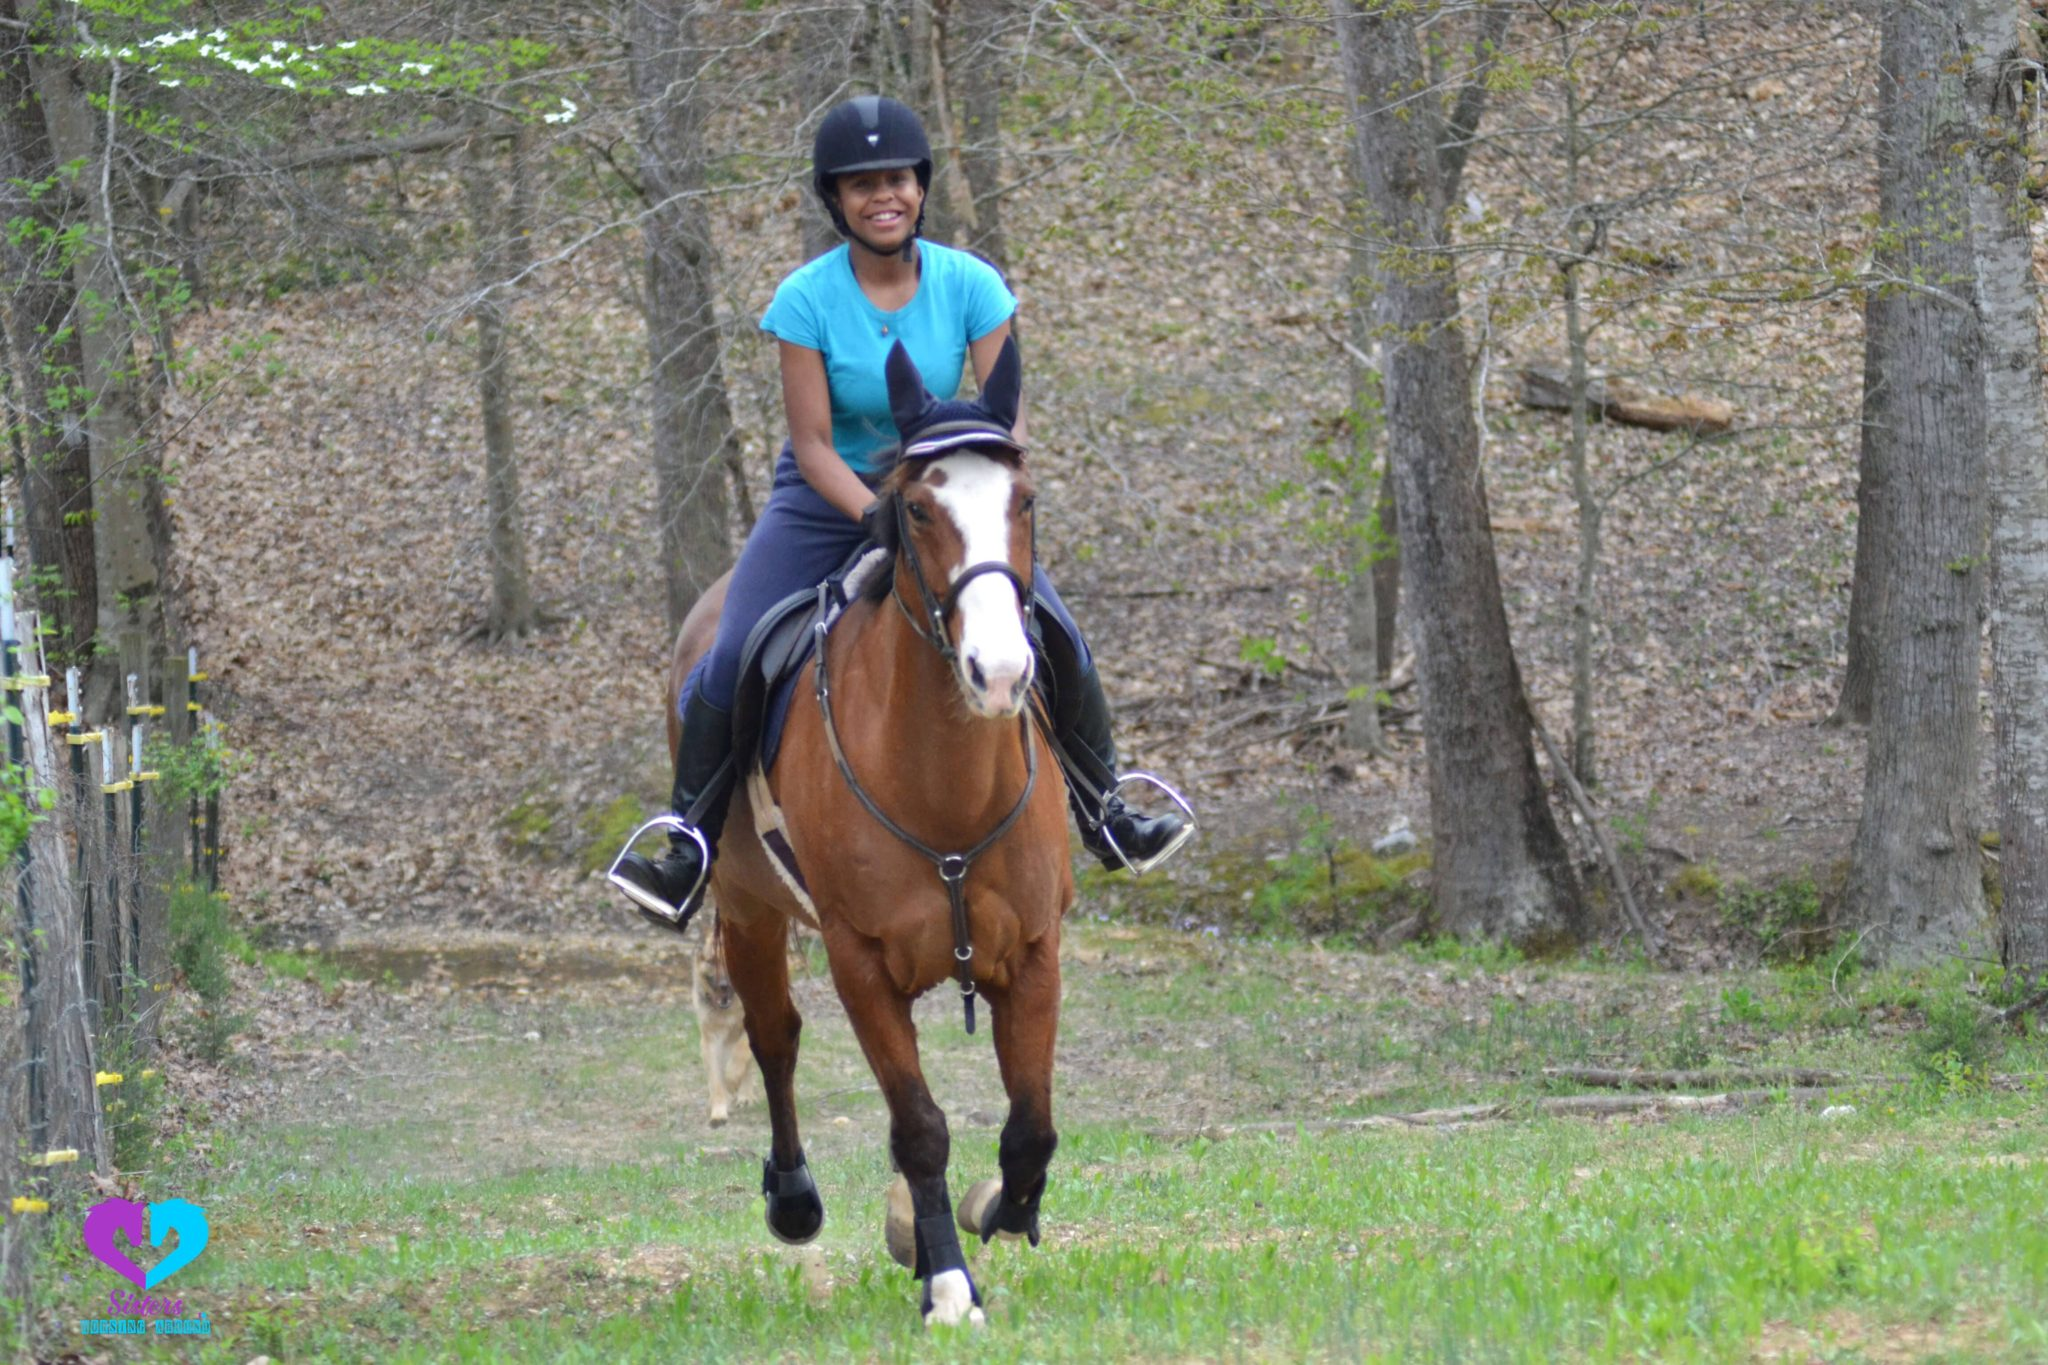 How To Ride A Horse For Beginners Basics Safety Mistakes